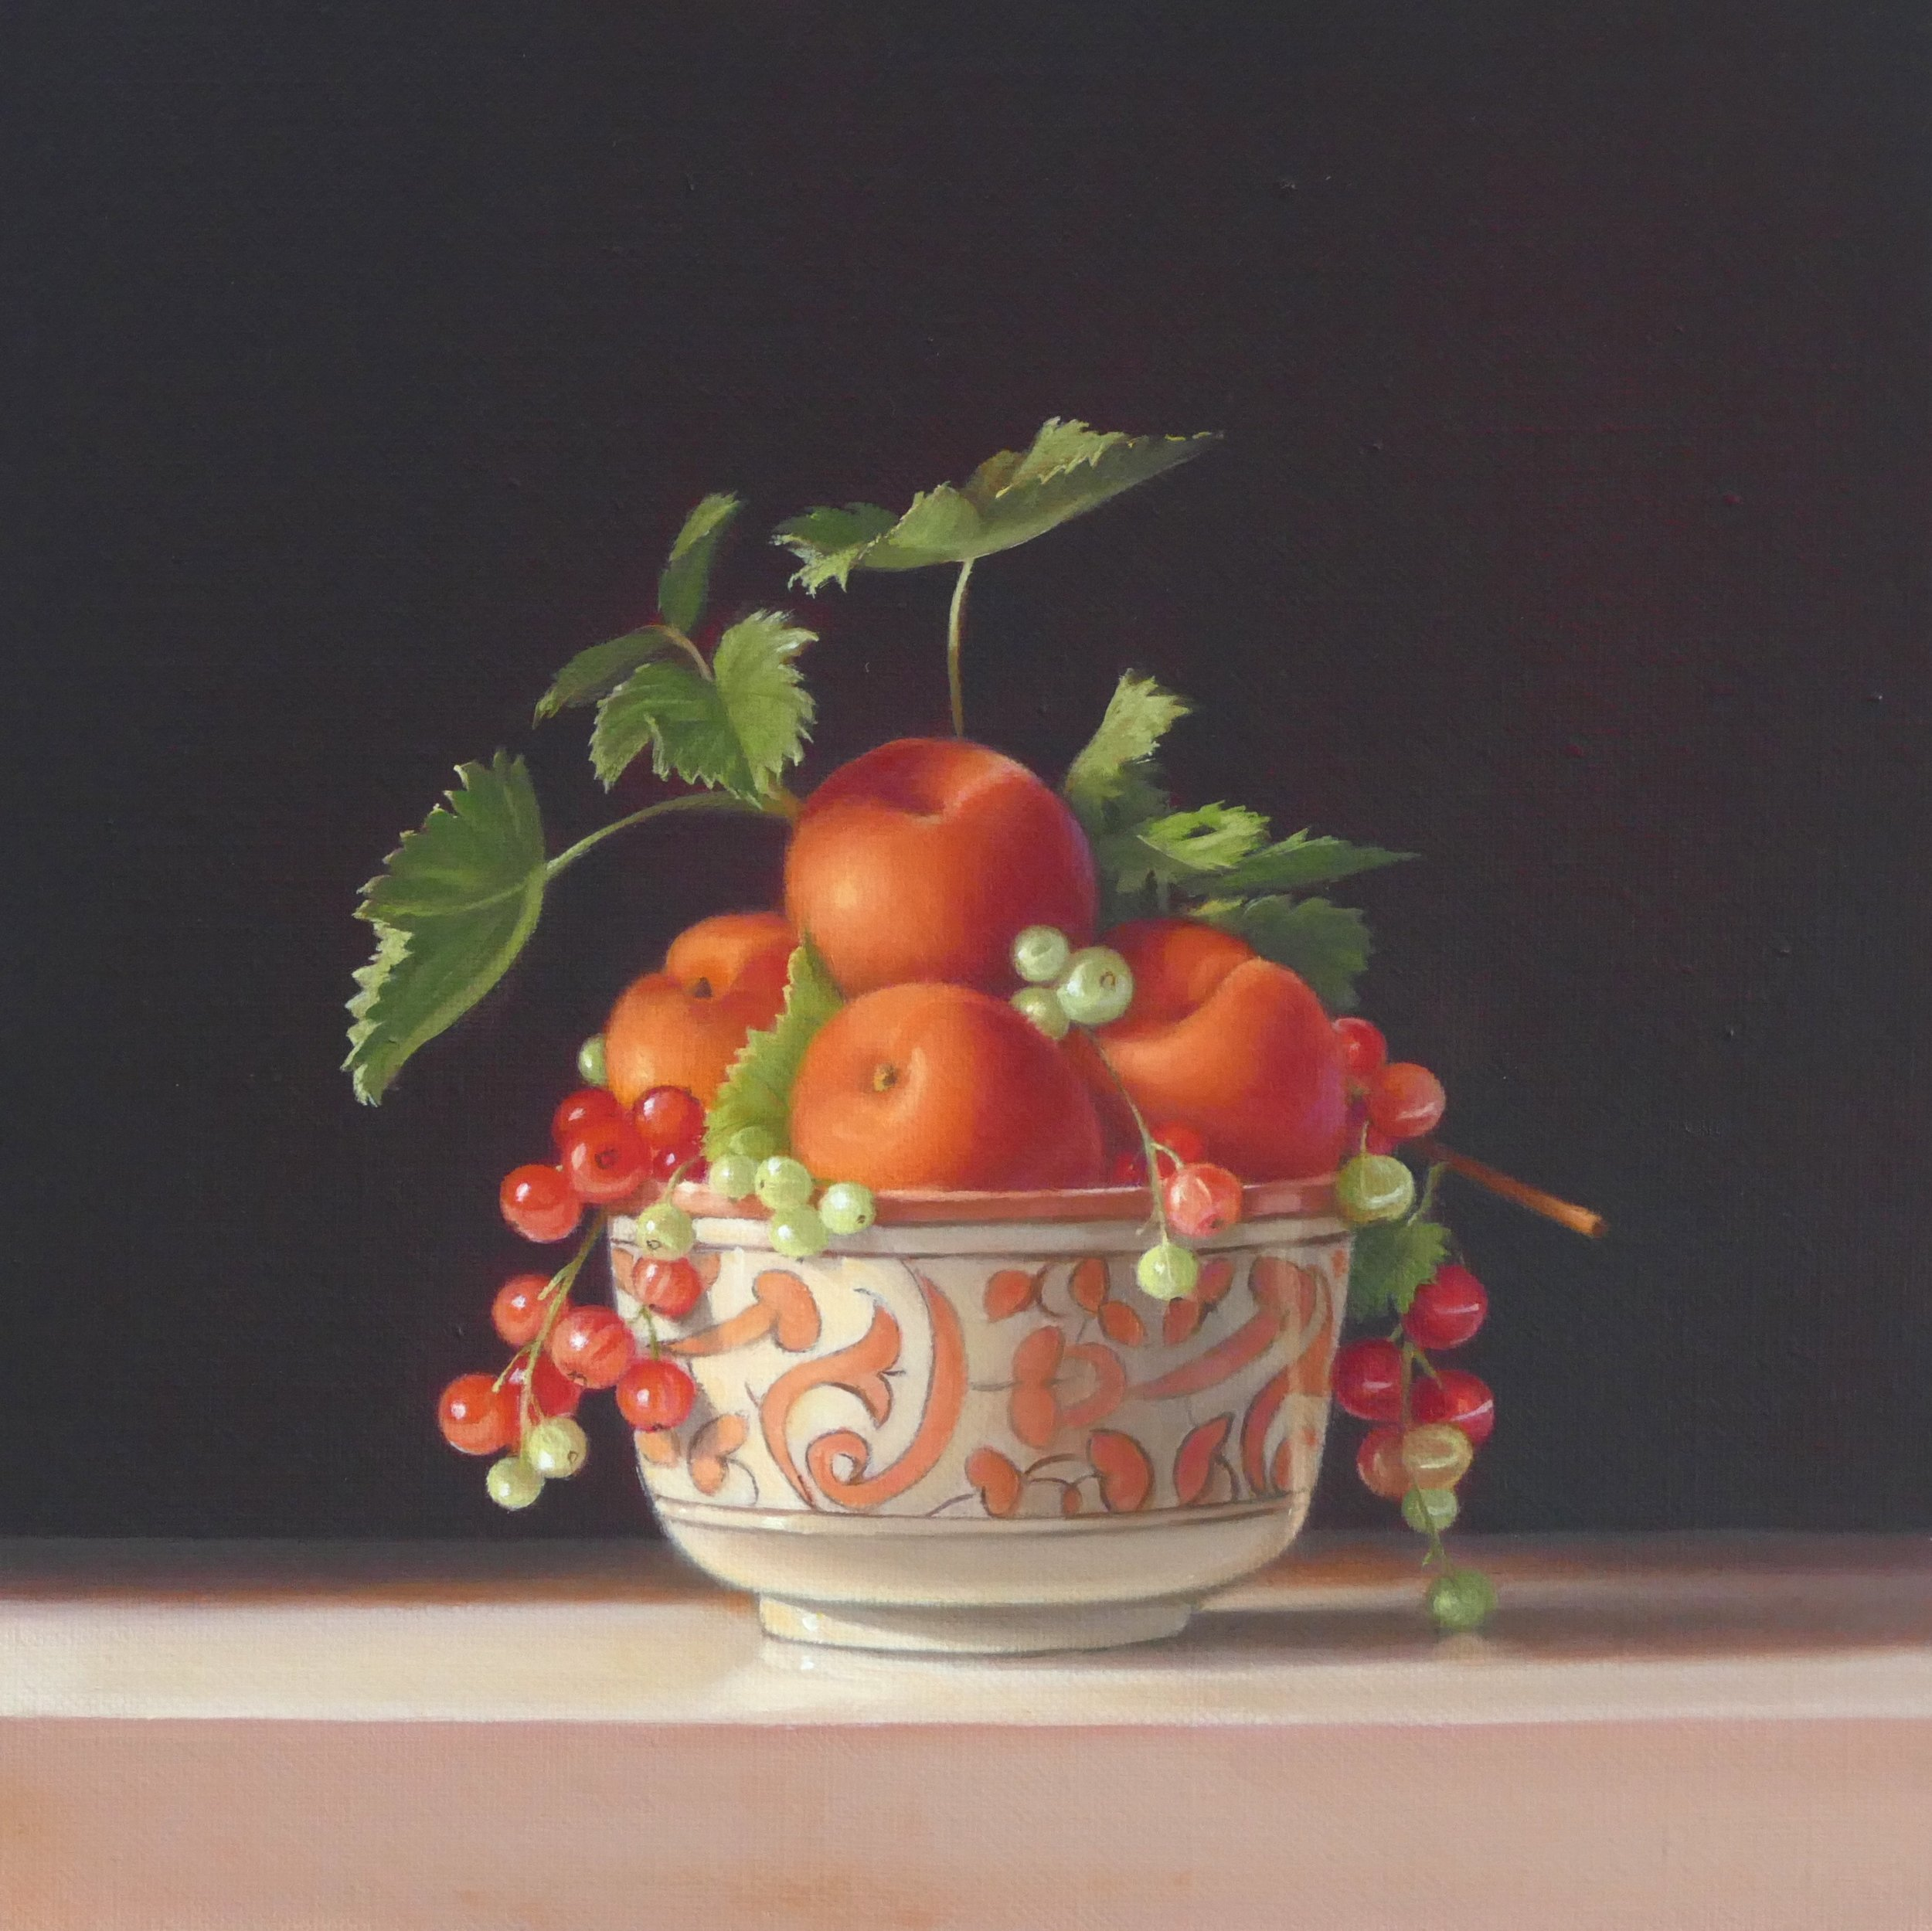 Apricots and Redcurrants. 30x30cm. Oil on linen. Private collection